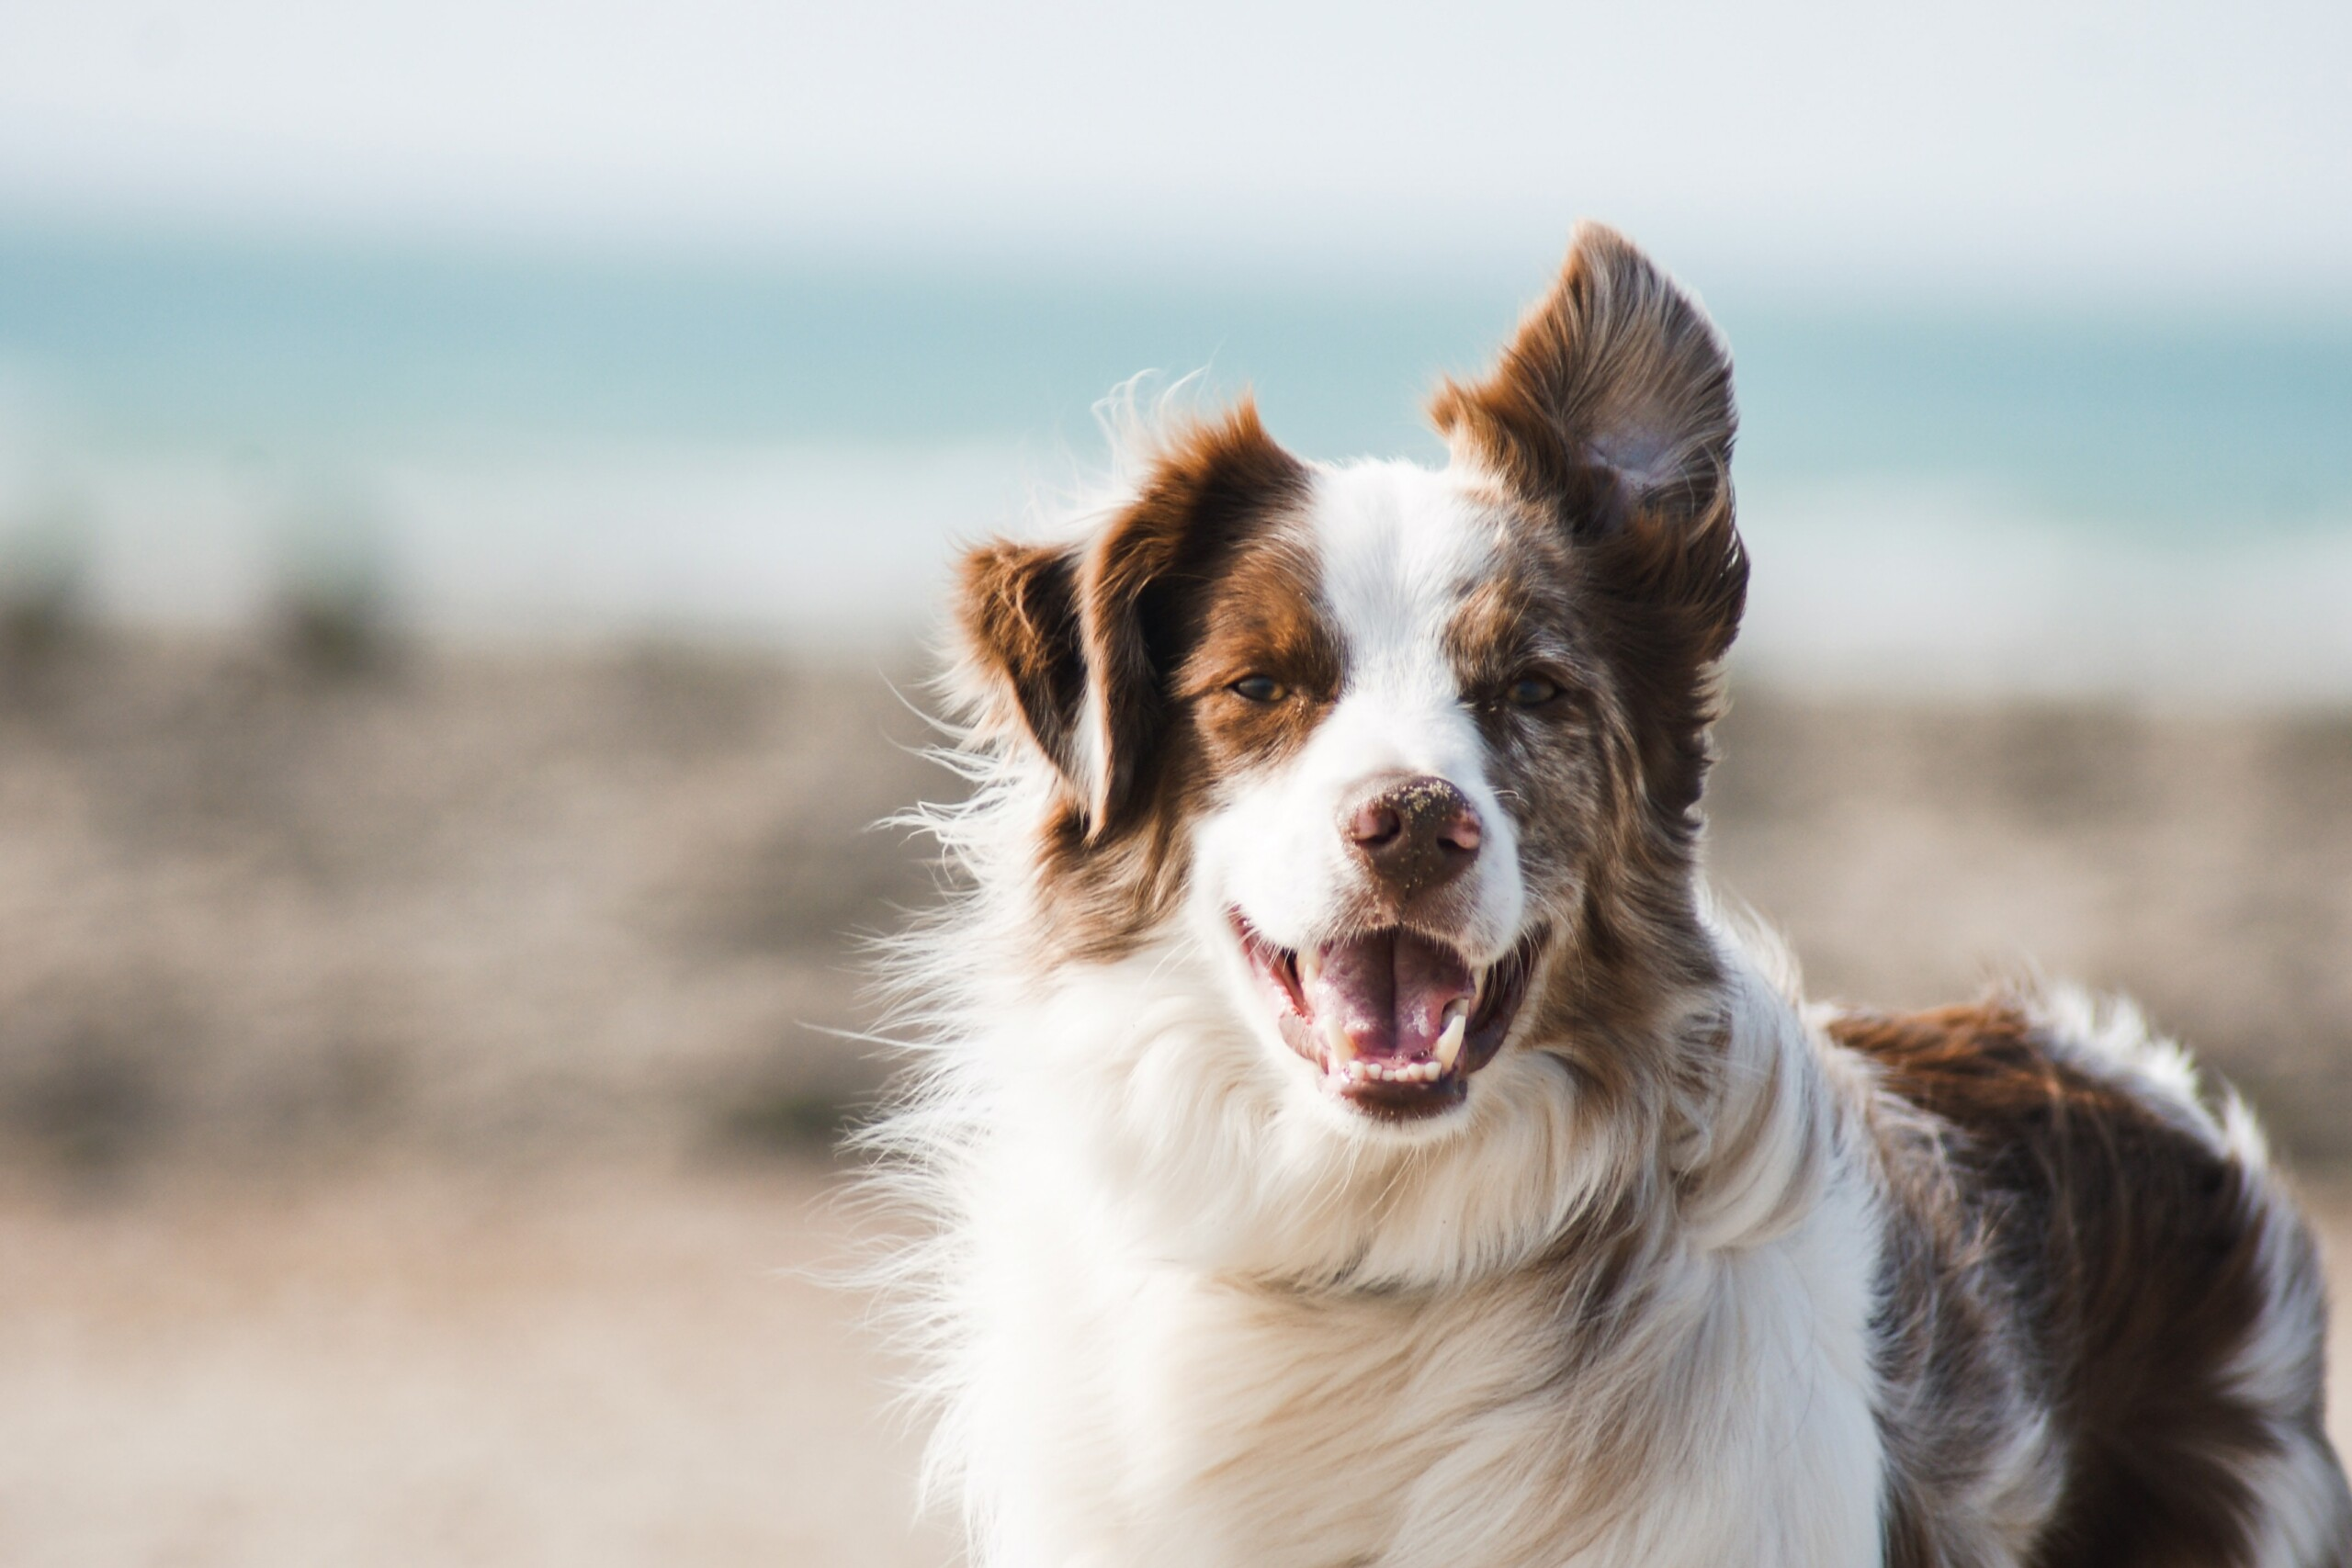 The 17 Best Tips to Keep Your Pet Healthy